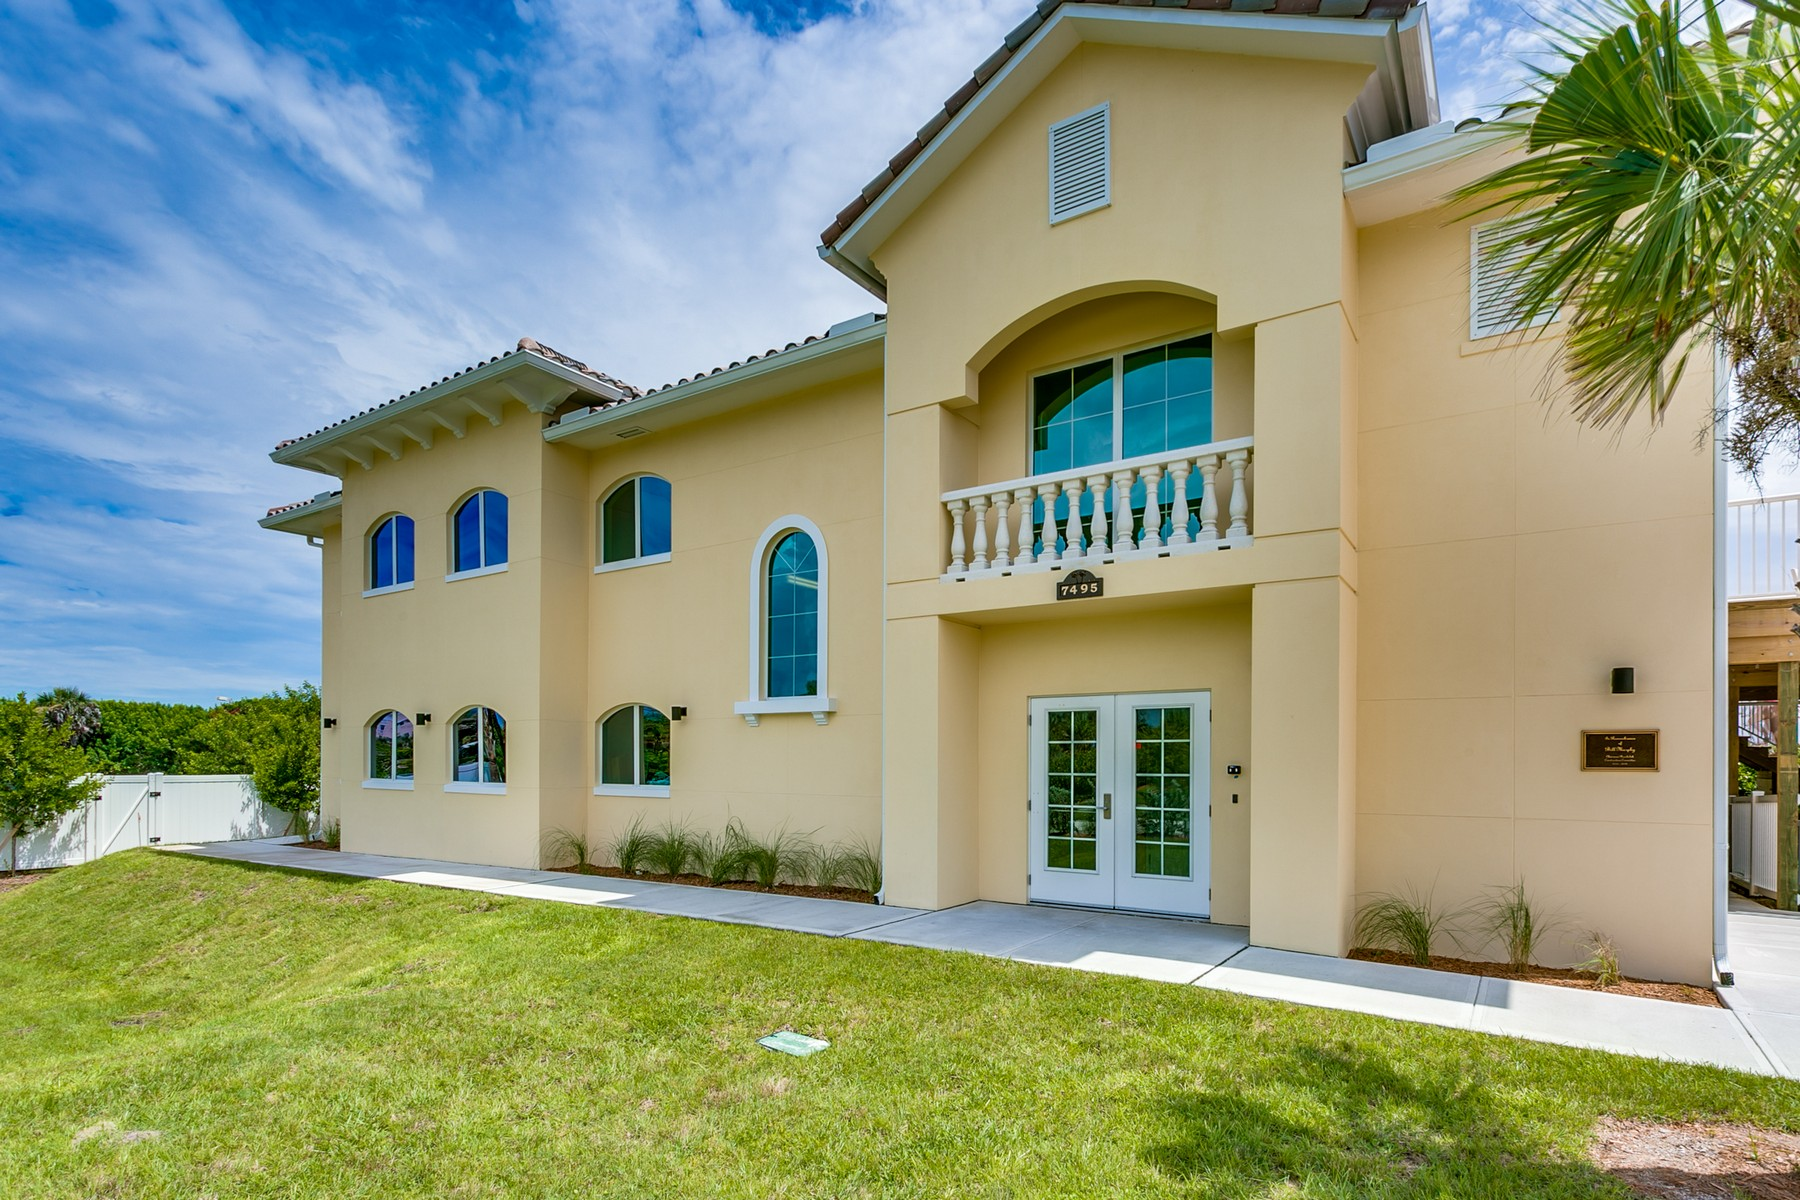 Additional photo for property listing at Cranes Point at Aquarina 841 Aquarina Blvd. Melbourne Beach, Florida 32951 United States